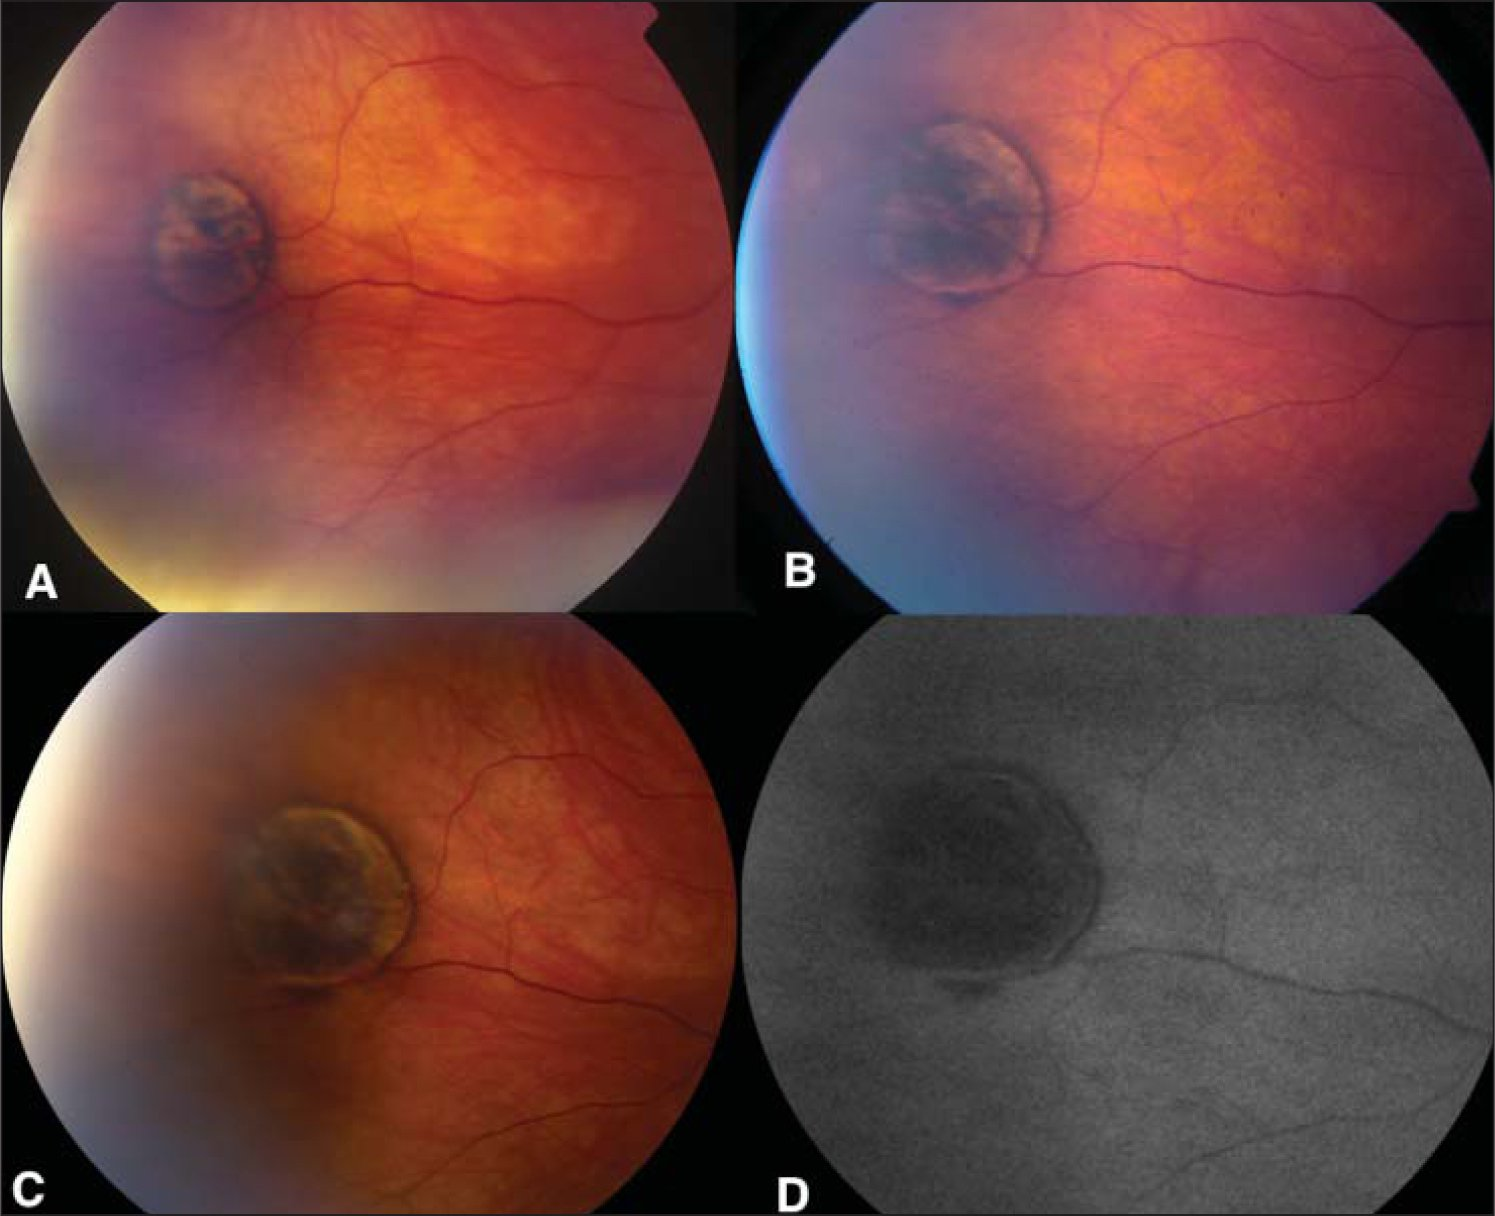 Evolution of congenital hypertrophy of the retinal pigment epithelium over 22 years. The lesion was noted when the patient was 2 years old as a tiny retinal pigment epithelium clump. (A) When the patient was 12 years old, the lesion was larger at 2 mm diameter and had pigmented halo. (B) When the patient was 18 years old, the lesion increased to 4 mm diameter and had slight darkening of color and noticeable peripheral depigmented and pigmented halo. (C) When the patient was 24 years old, a slight increase in base to 4.25 mm with more definitive halo was noted. (D) Fundus autofluorescence at age 24 years revealed intense hypofluoresence of the pigmented area and normofluorescence in the lacunae.